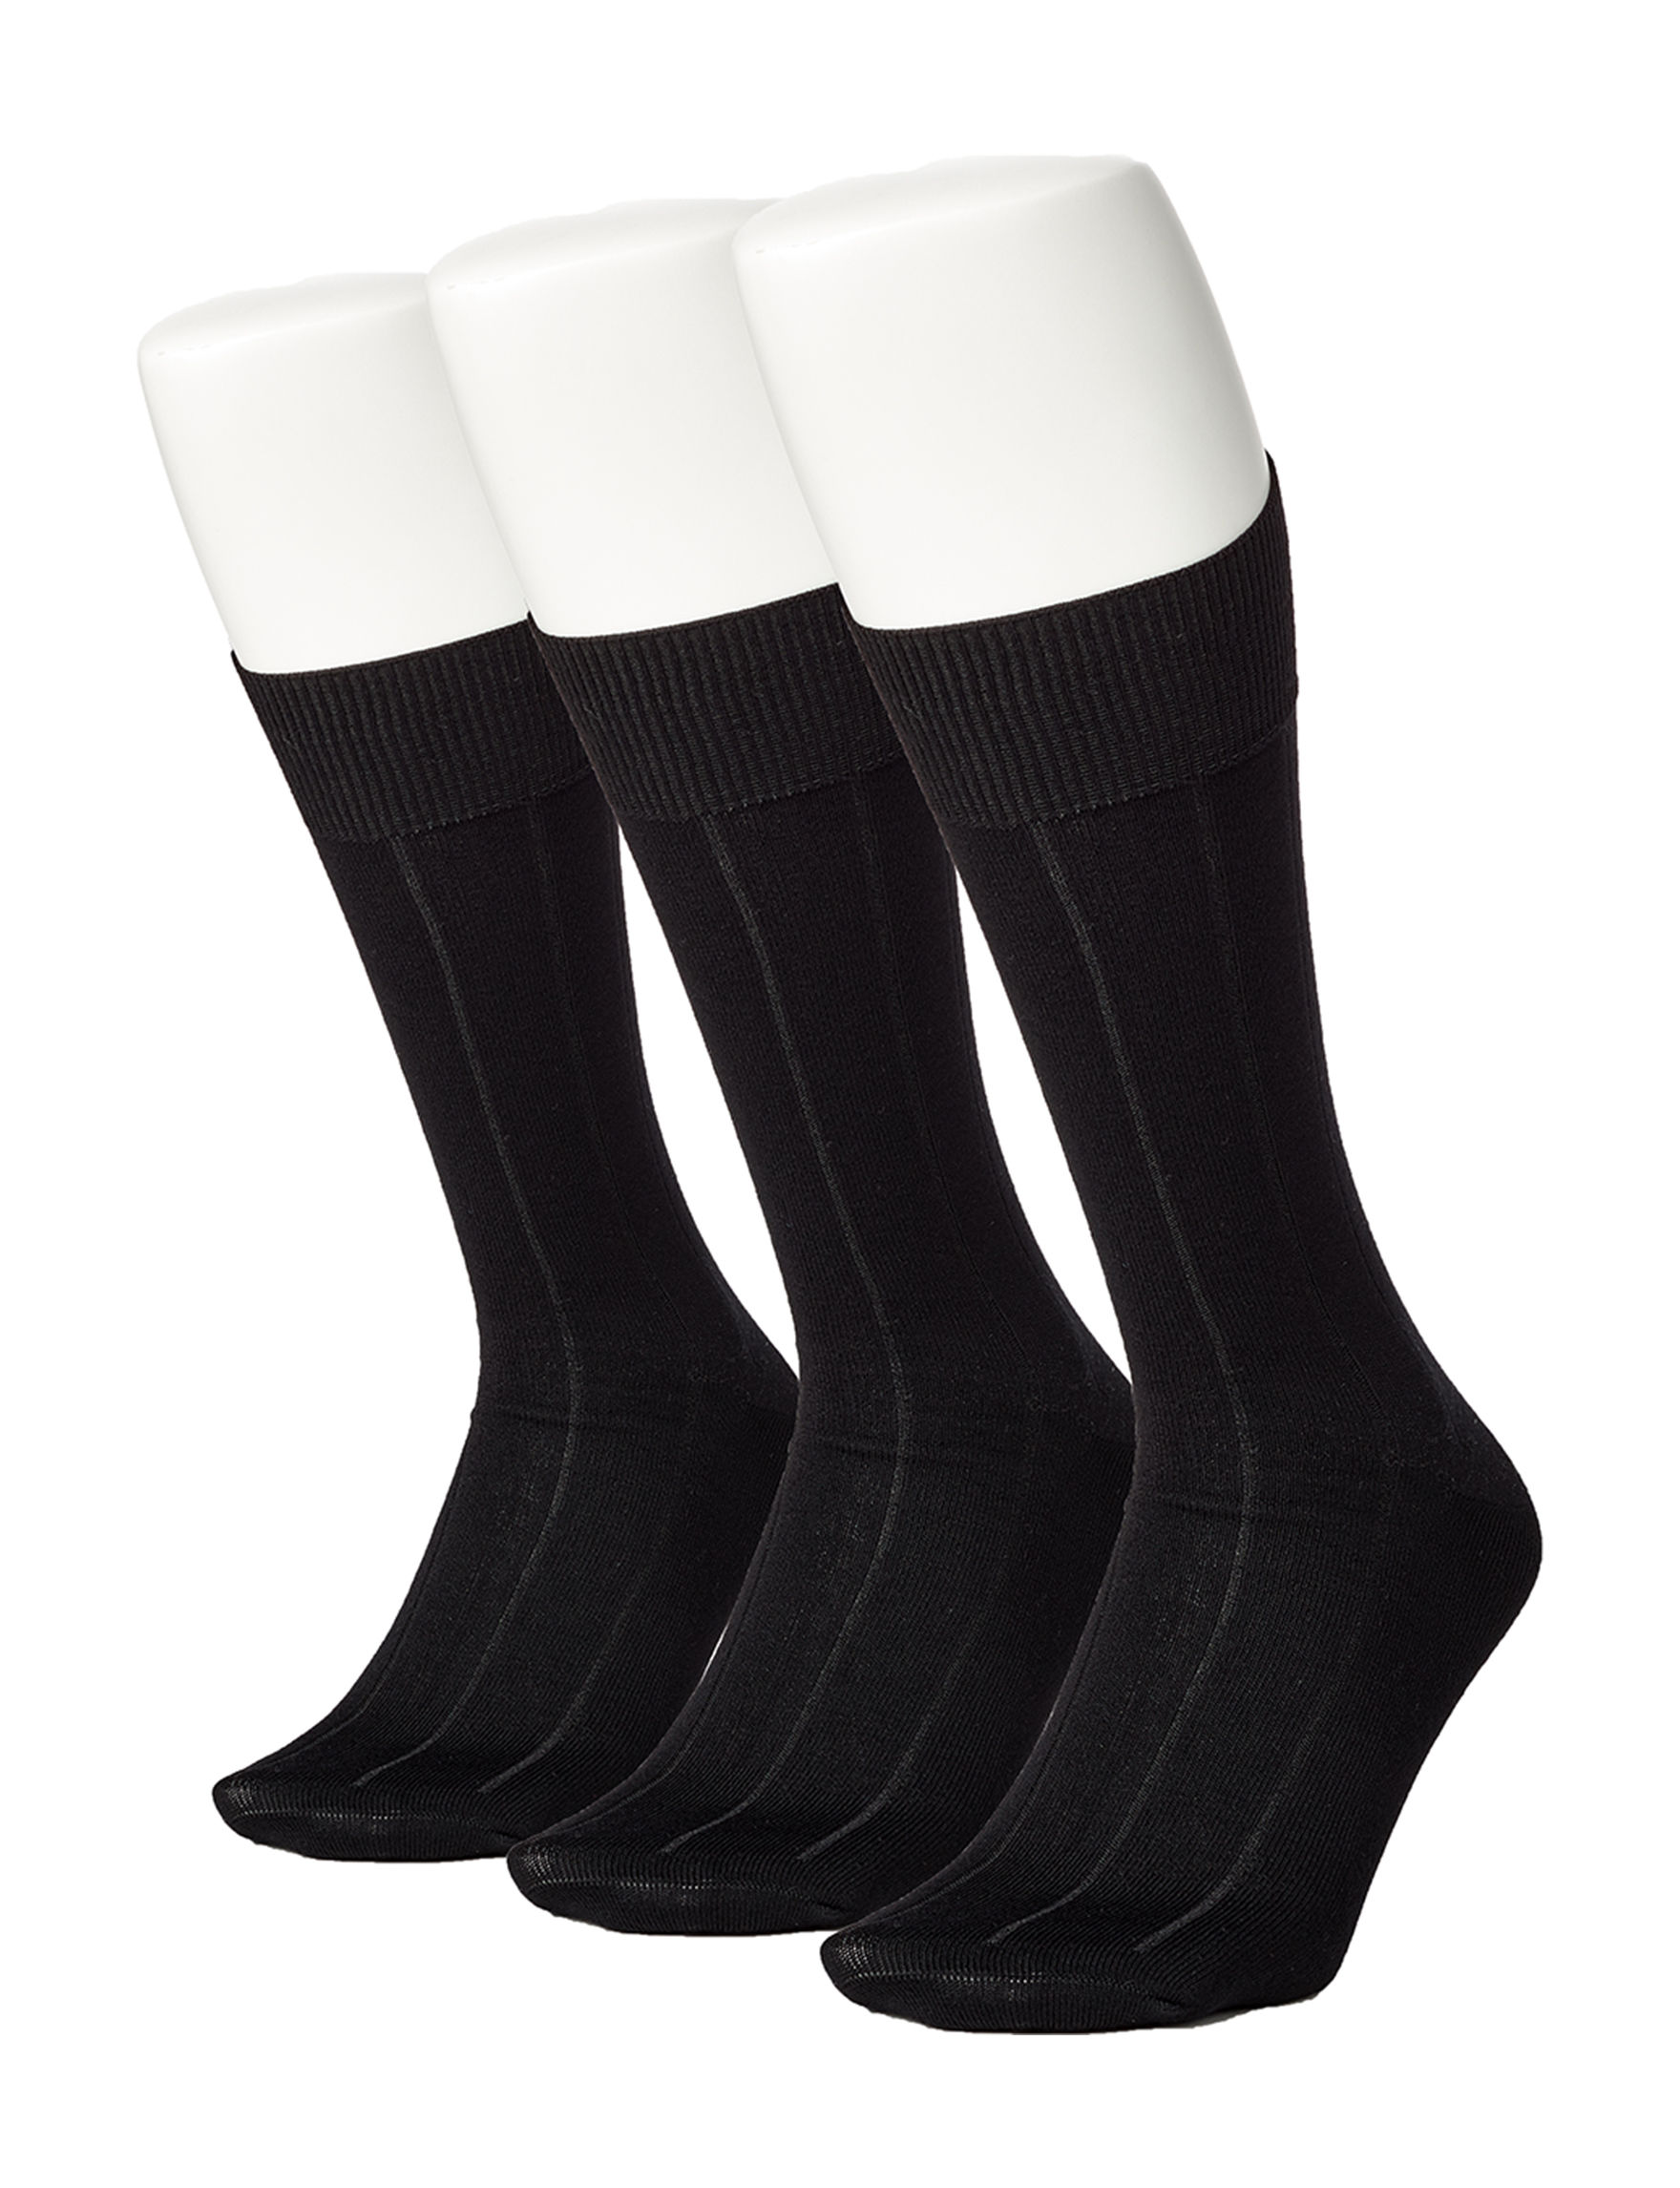 Perry Ellis Black Socks